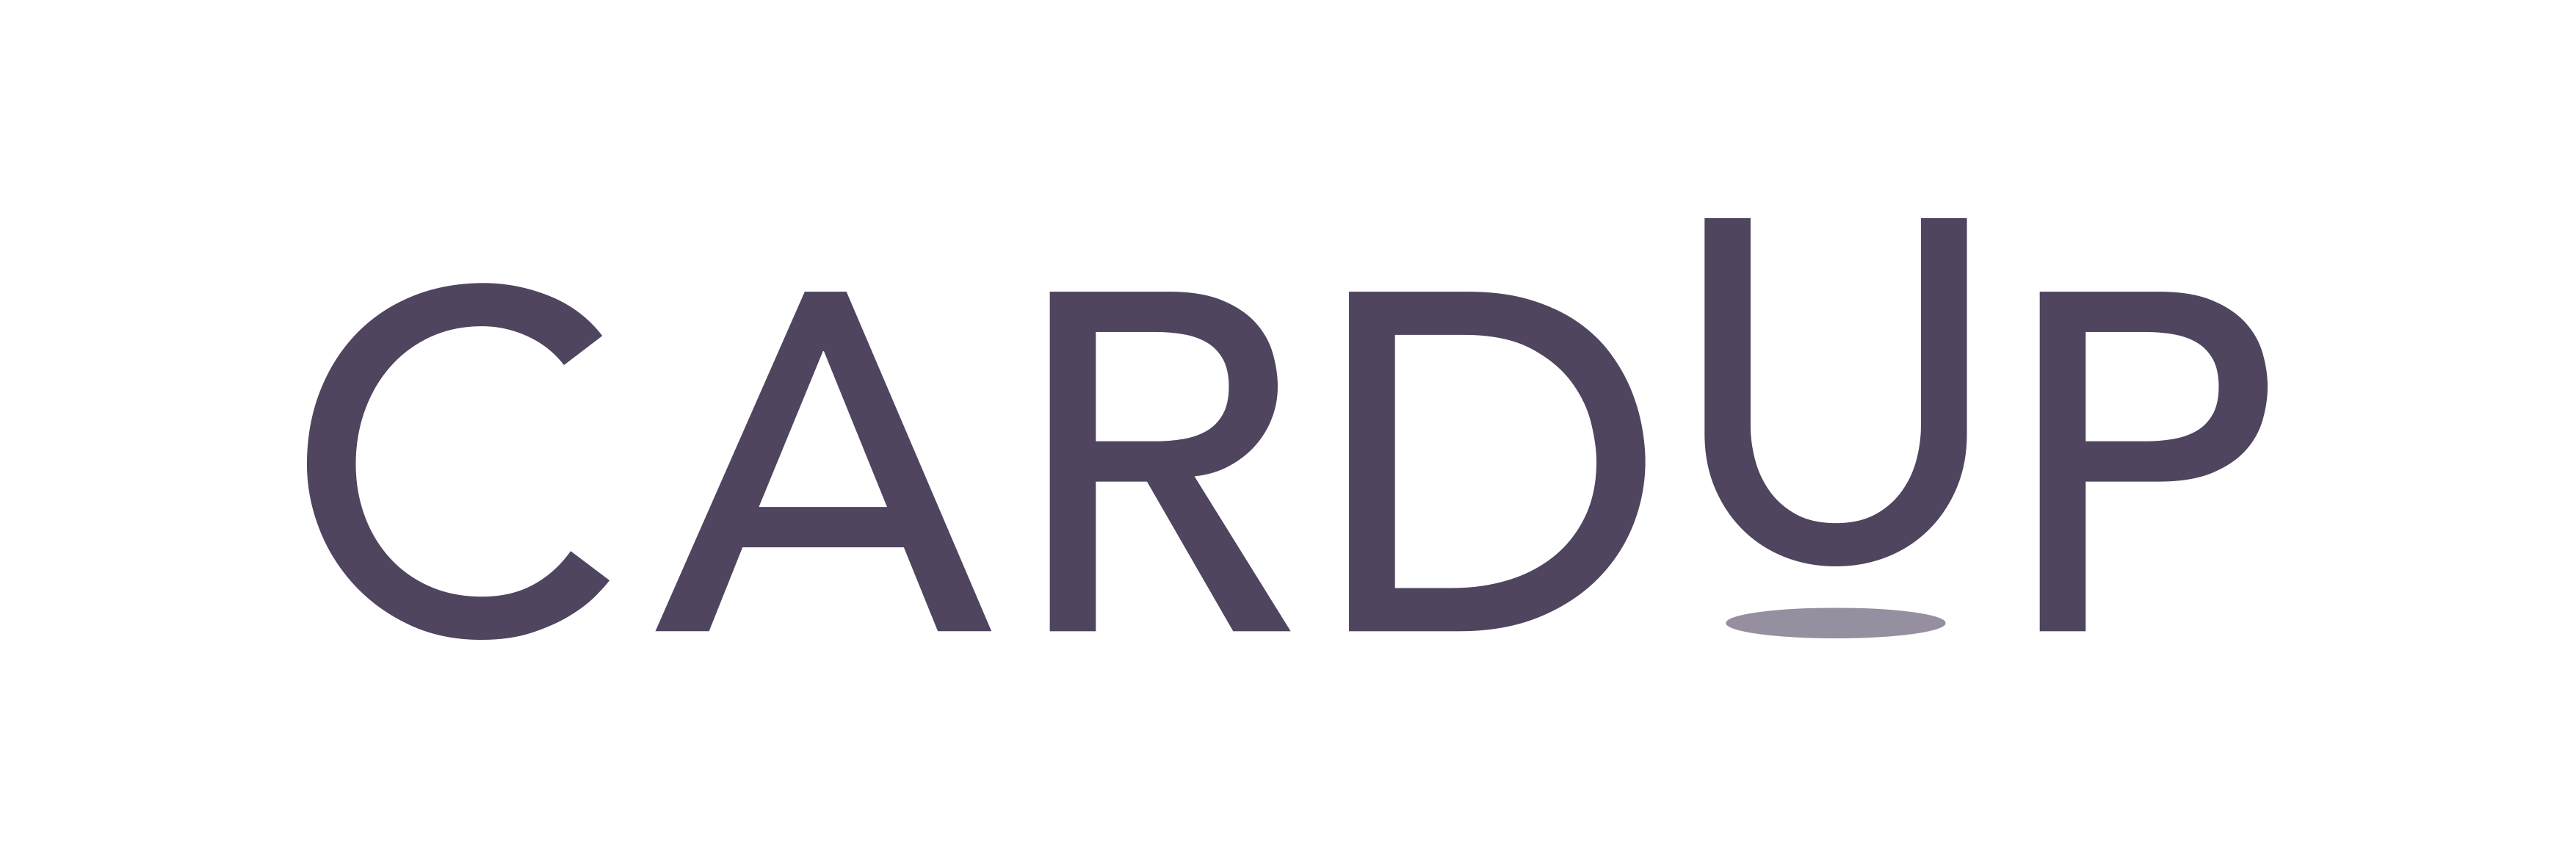 CardUp Launches Operations in Hong Kong and Partners with Visa to Offer Businesses Instant Access to Credit